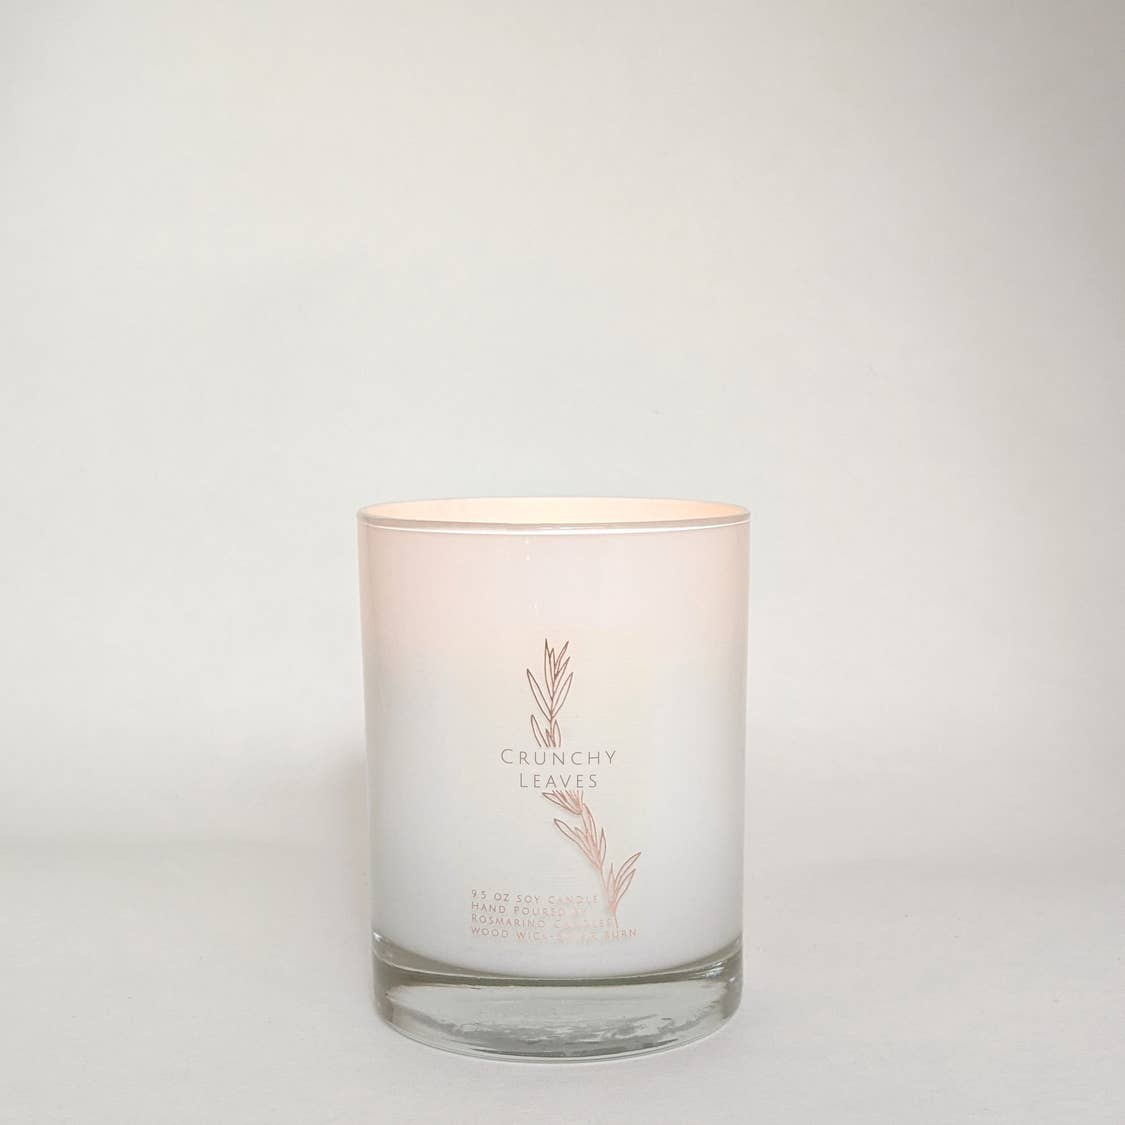 Crunchy Leaves Candle 9.5oz